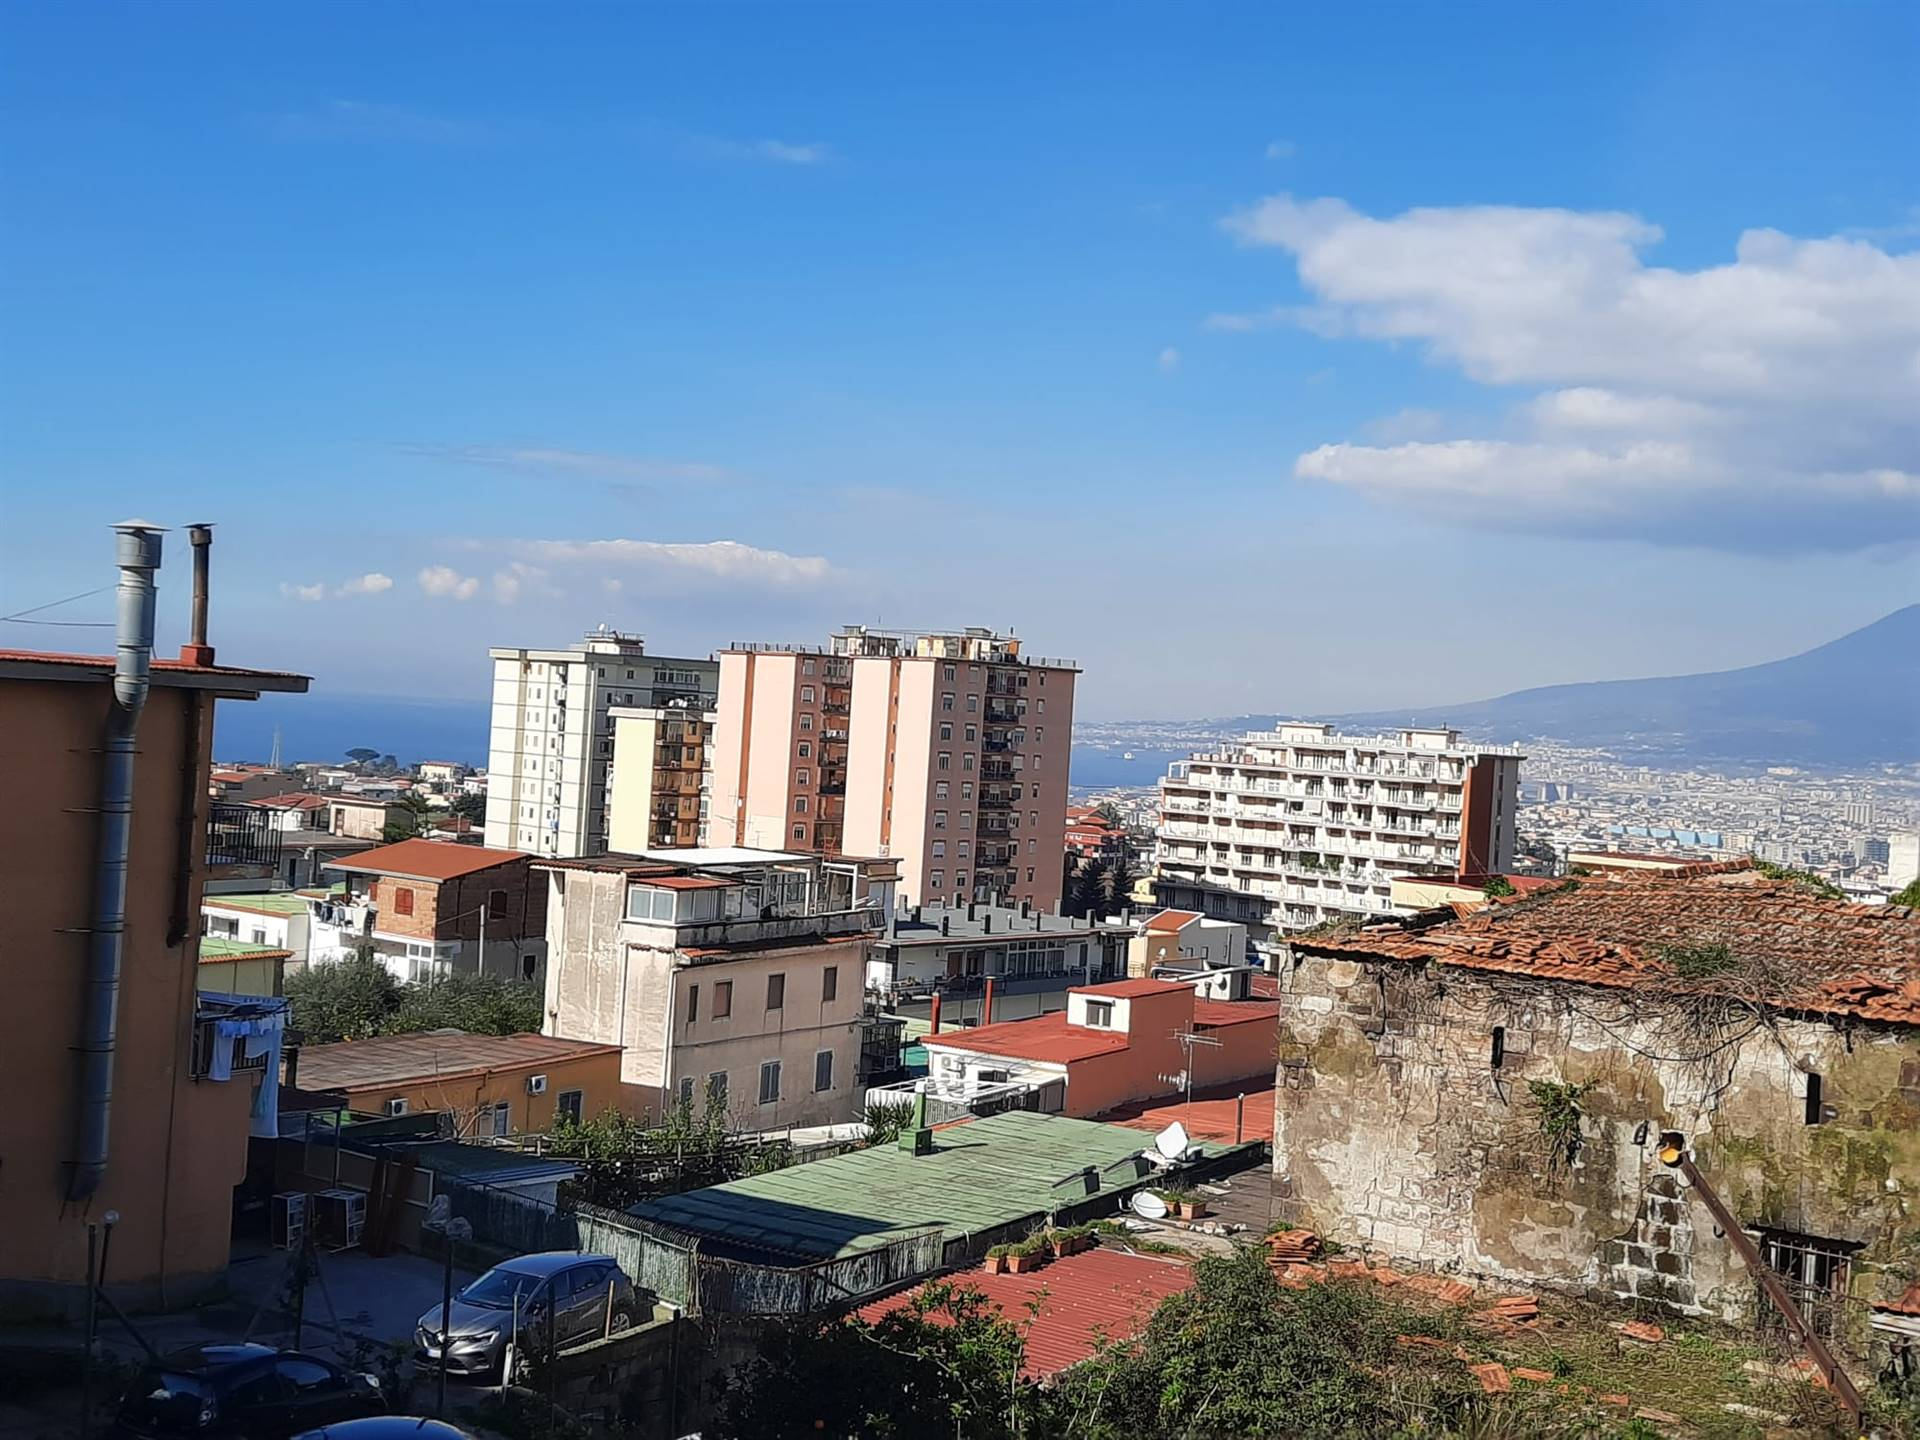 GRAGNANO, Apartment for rent of 65 Sq. mt., Good condition, Heating Individual heating system, Energetic class: G, Epi: 1 kwh/m2 year, placed at 1°